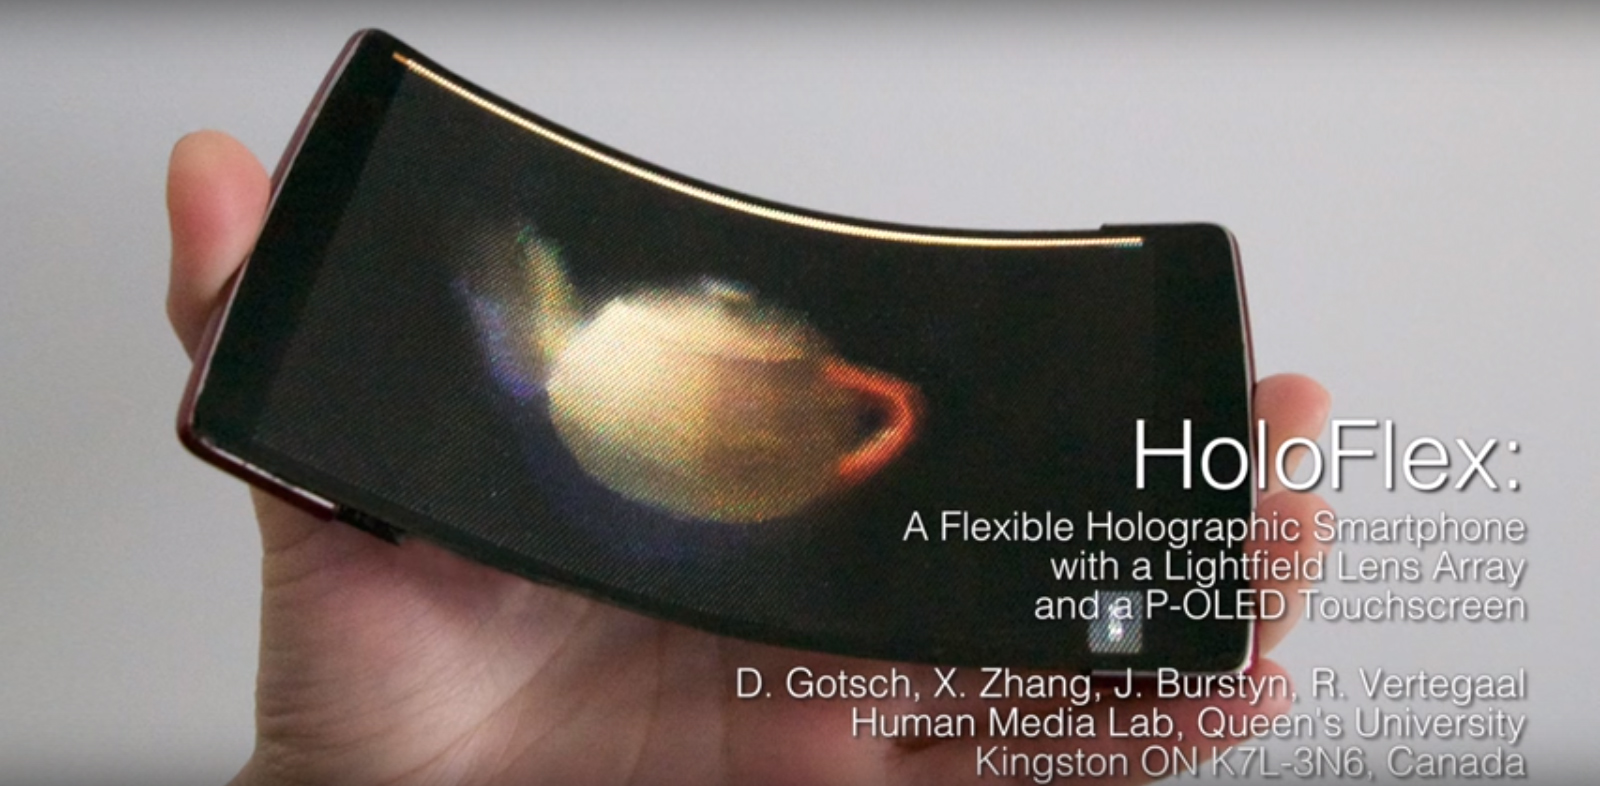 HoloFlex is a holographic and flexible Android smartphone 1